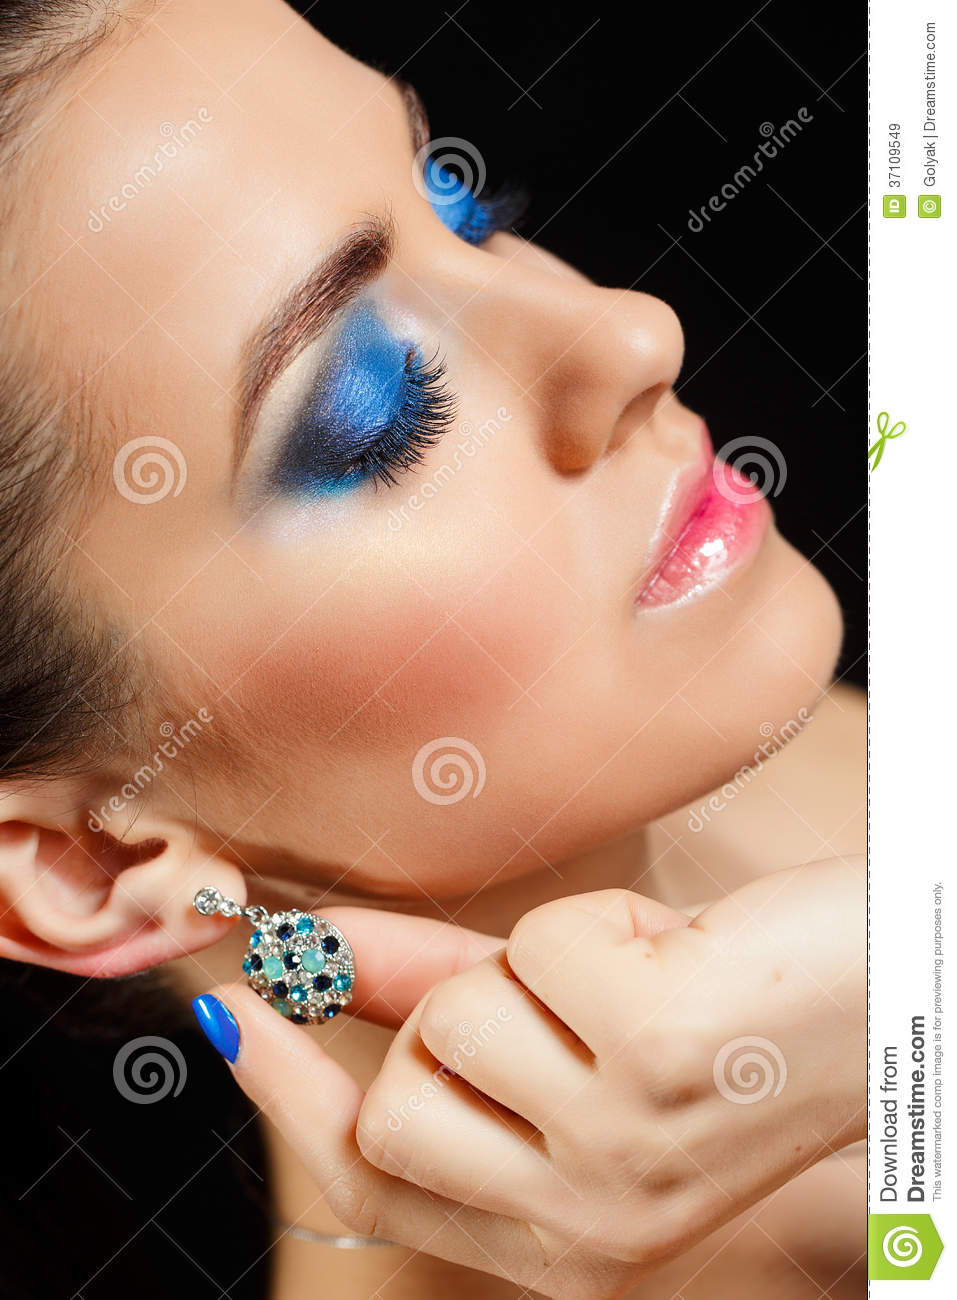 Beauty Vogue Style Fashion Model Girl Royalty Free Stock Images Image 37109549